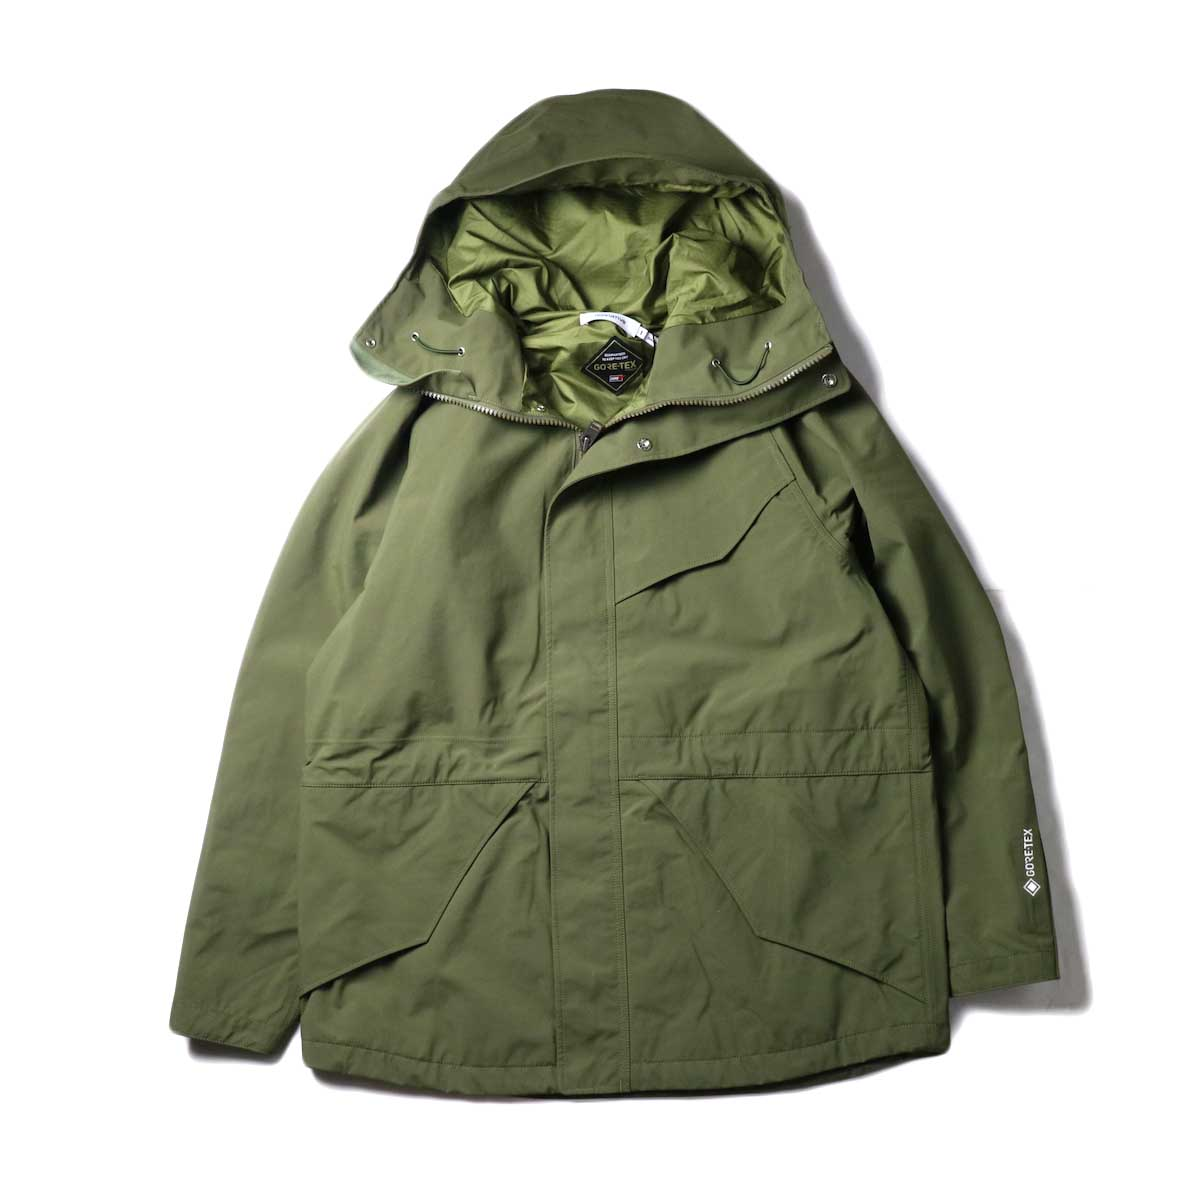 nonnative / HIKER HOODED JACKET NYLON WEATHER WITH GORE-TEX® 3L (Olive)